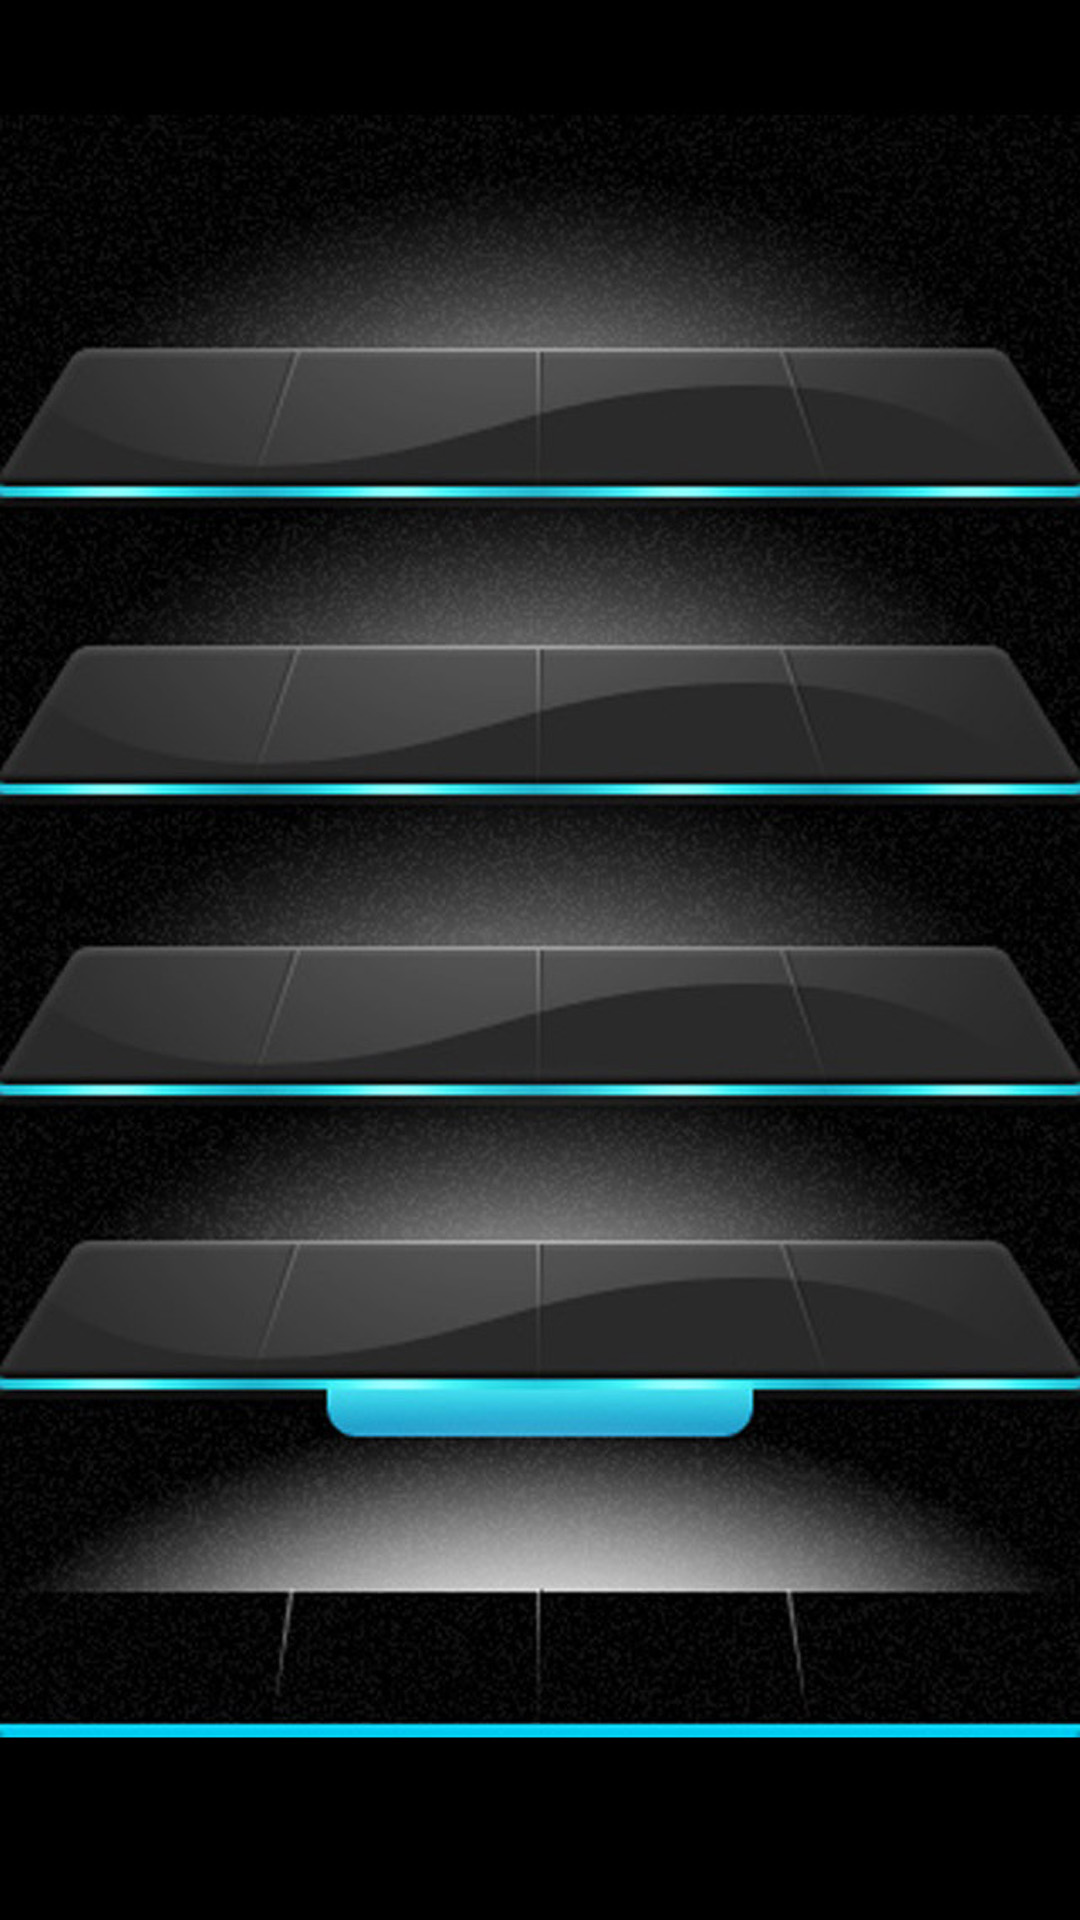 Shelf iPhone 6 Plus Wallpaper 176 iPhone 6 Plus Wallpapers HD 1080x1920